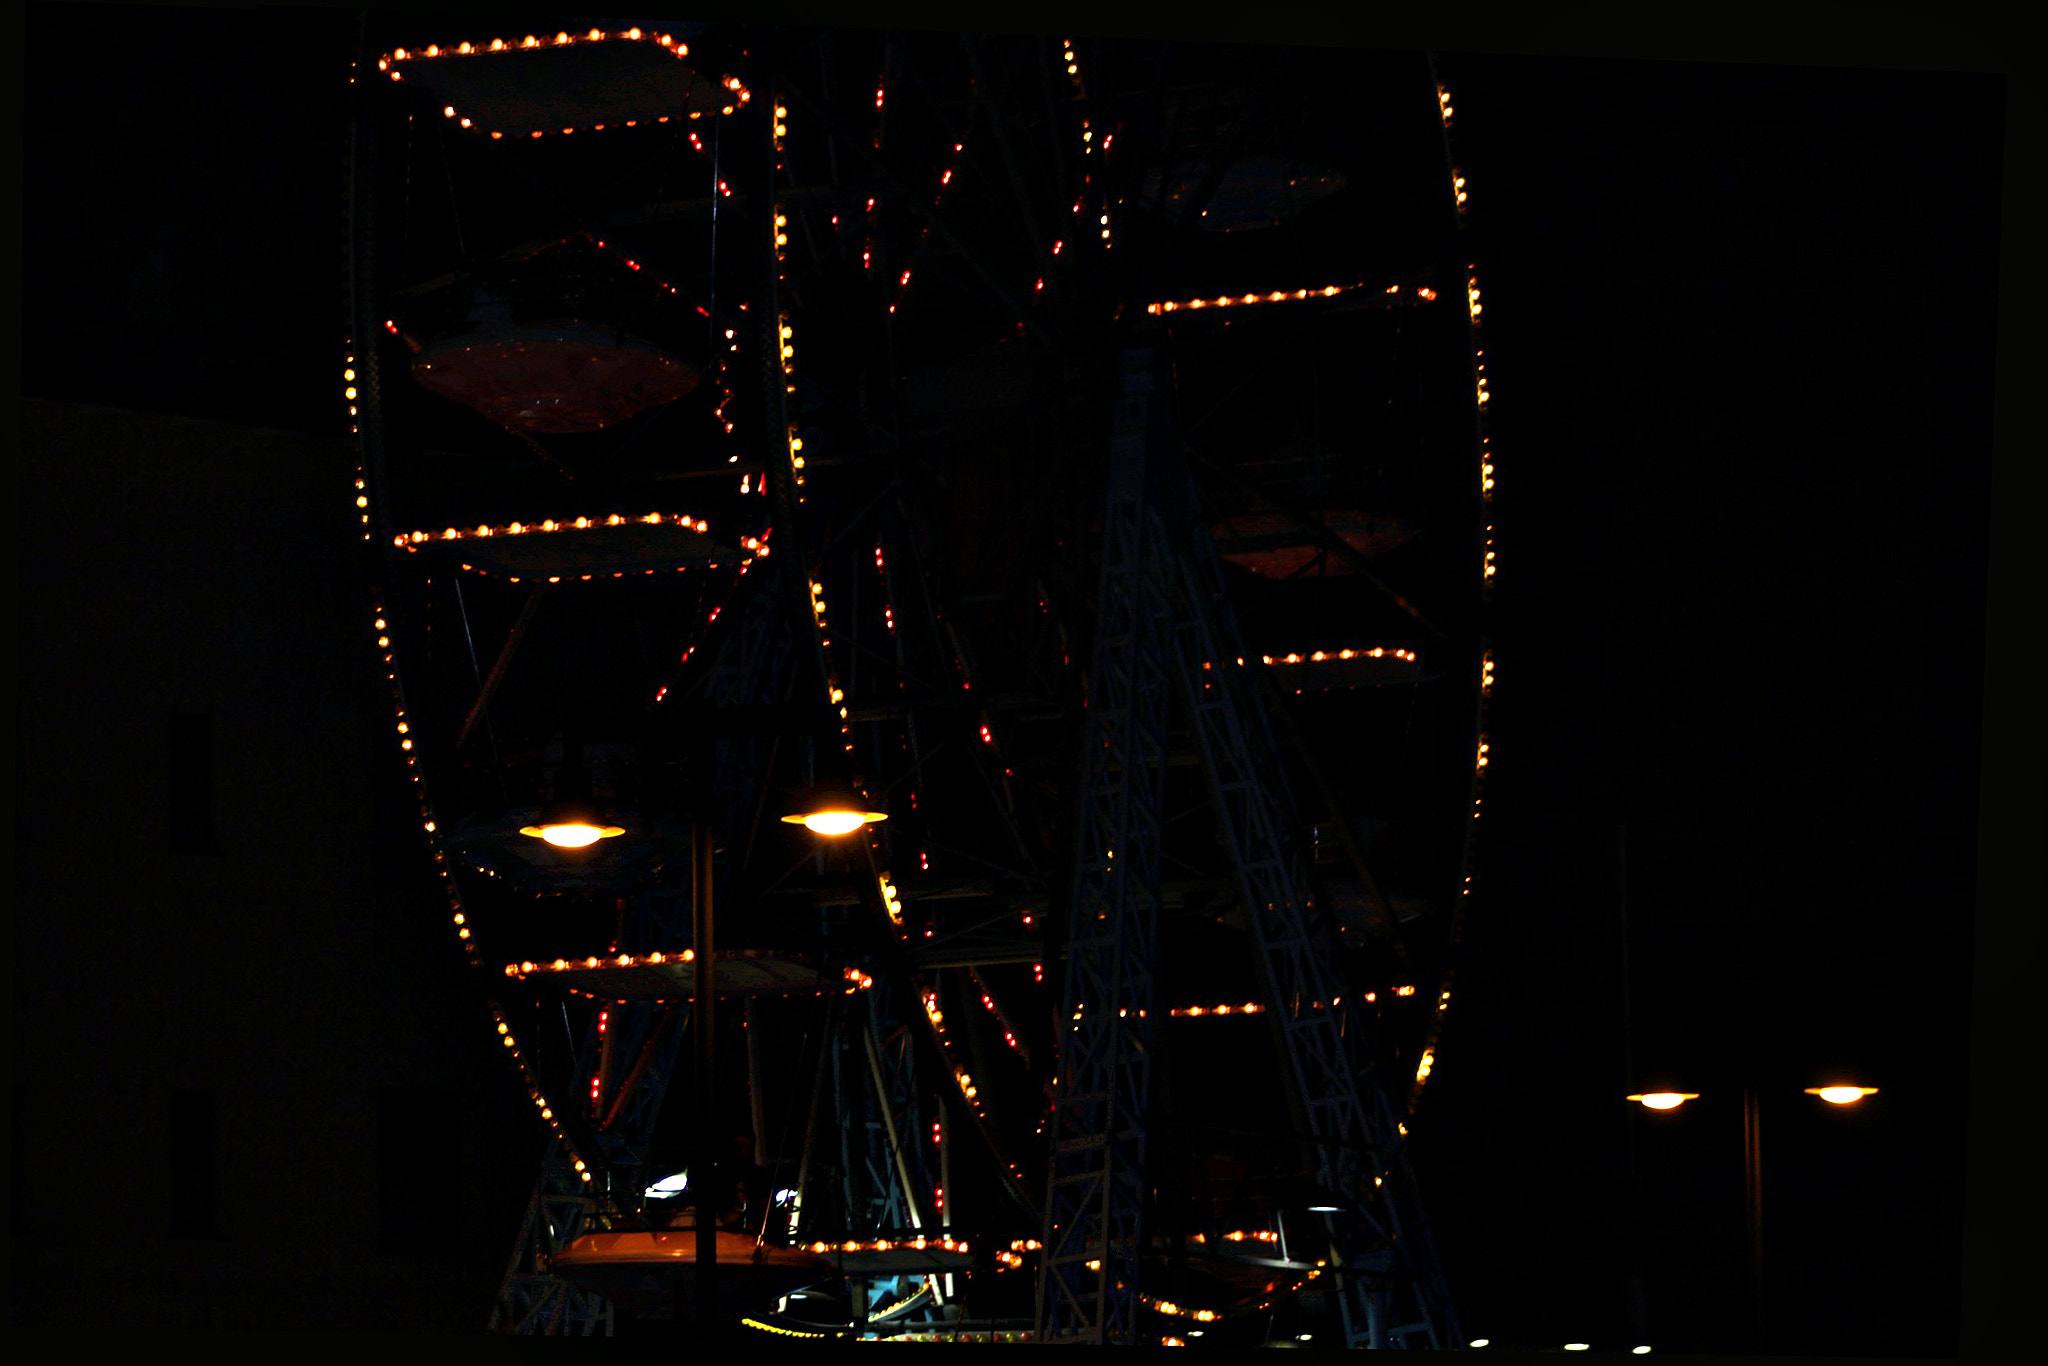 Photograph The ghost of ferris wheel by Urbinati Roberto on 500px